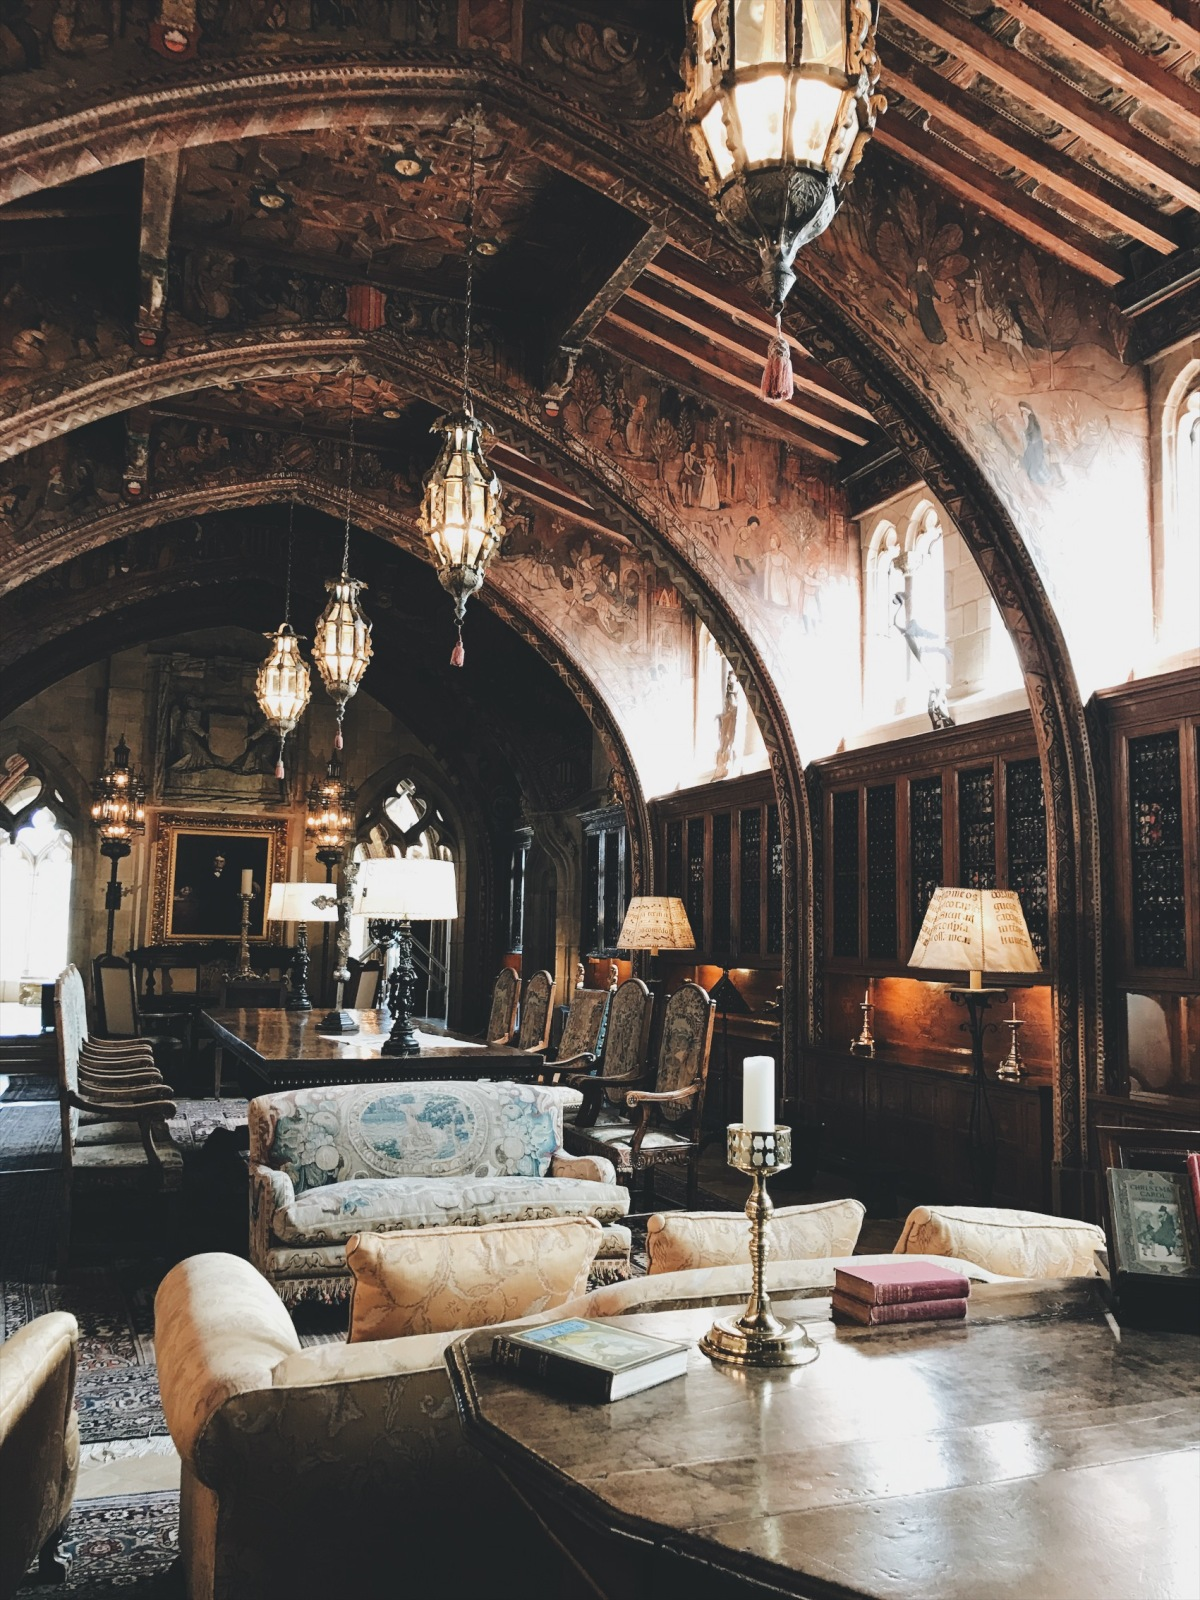 Hearst Castle, California Travel, castle, nineteenth century, lookbook, fashion blogger, fashion, style, style blogger, travel, travel blogger, black dress, white turtleneck, Kate Spade, loafers, European architecture, outfit of the day, ootd, look of the day, Greek architecture, history, 19th Century art